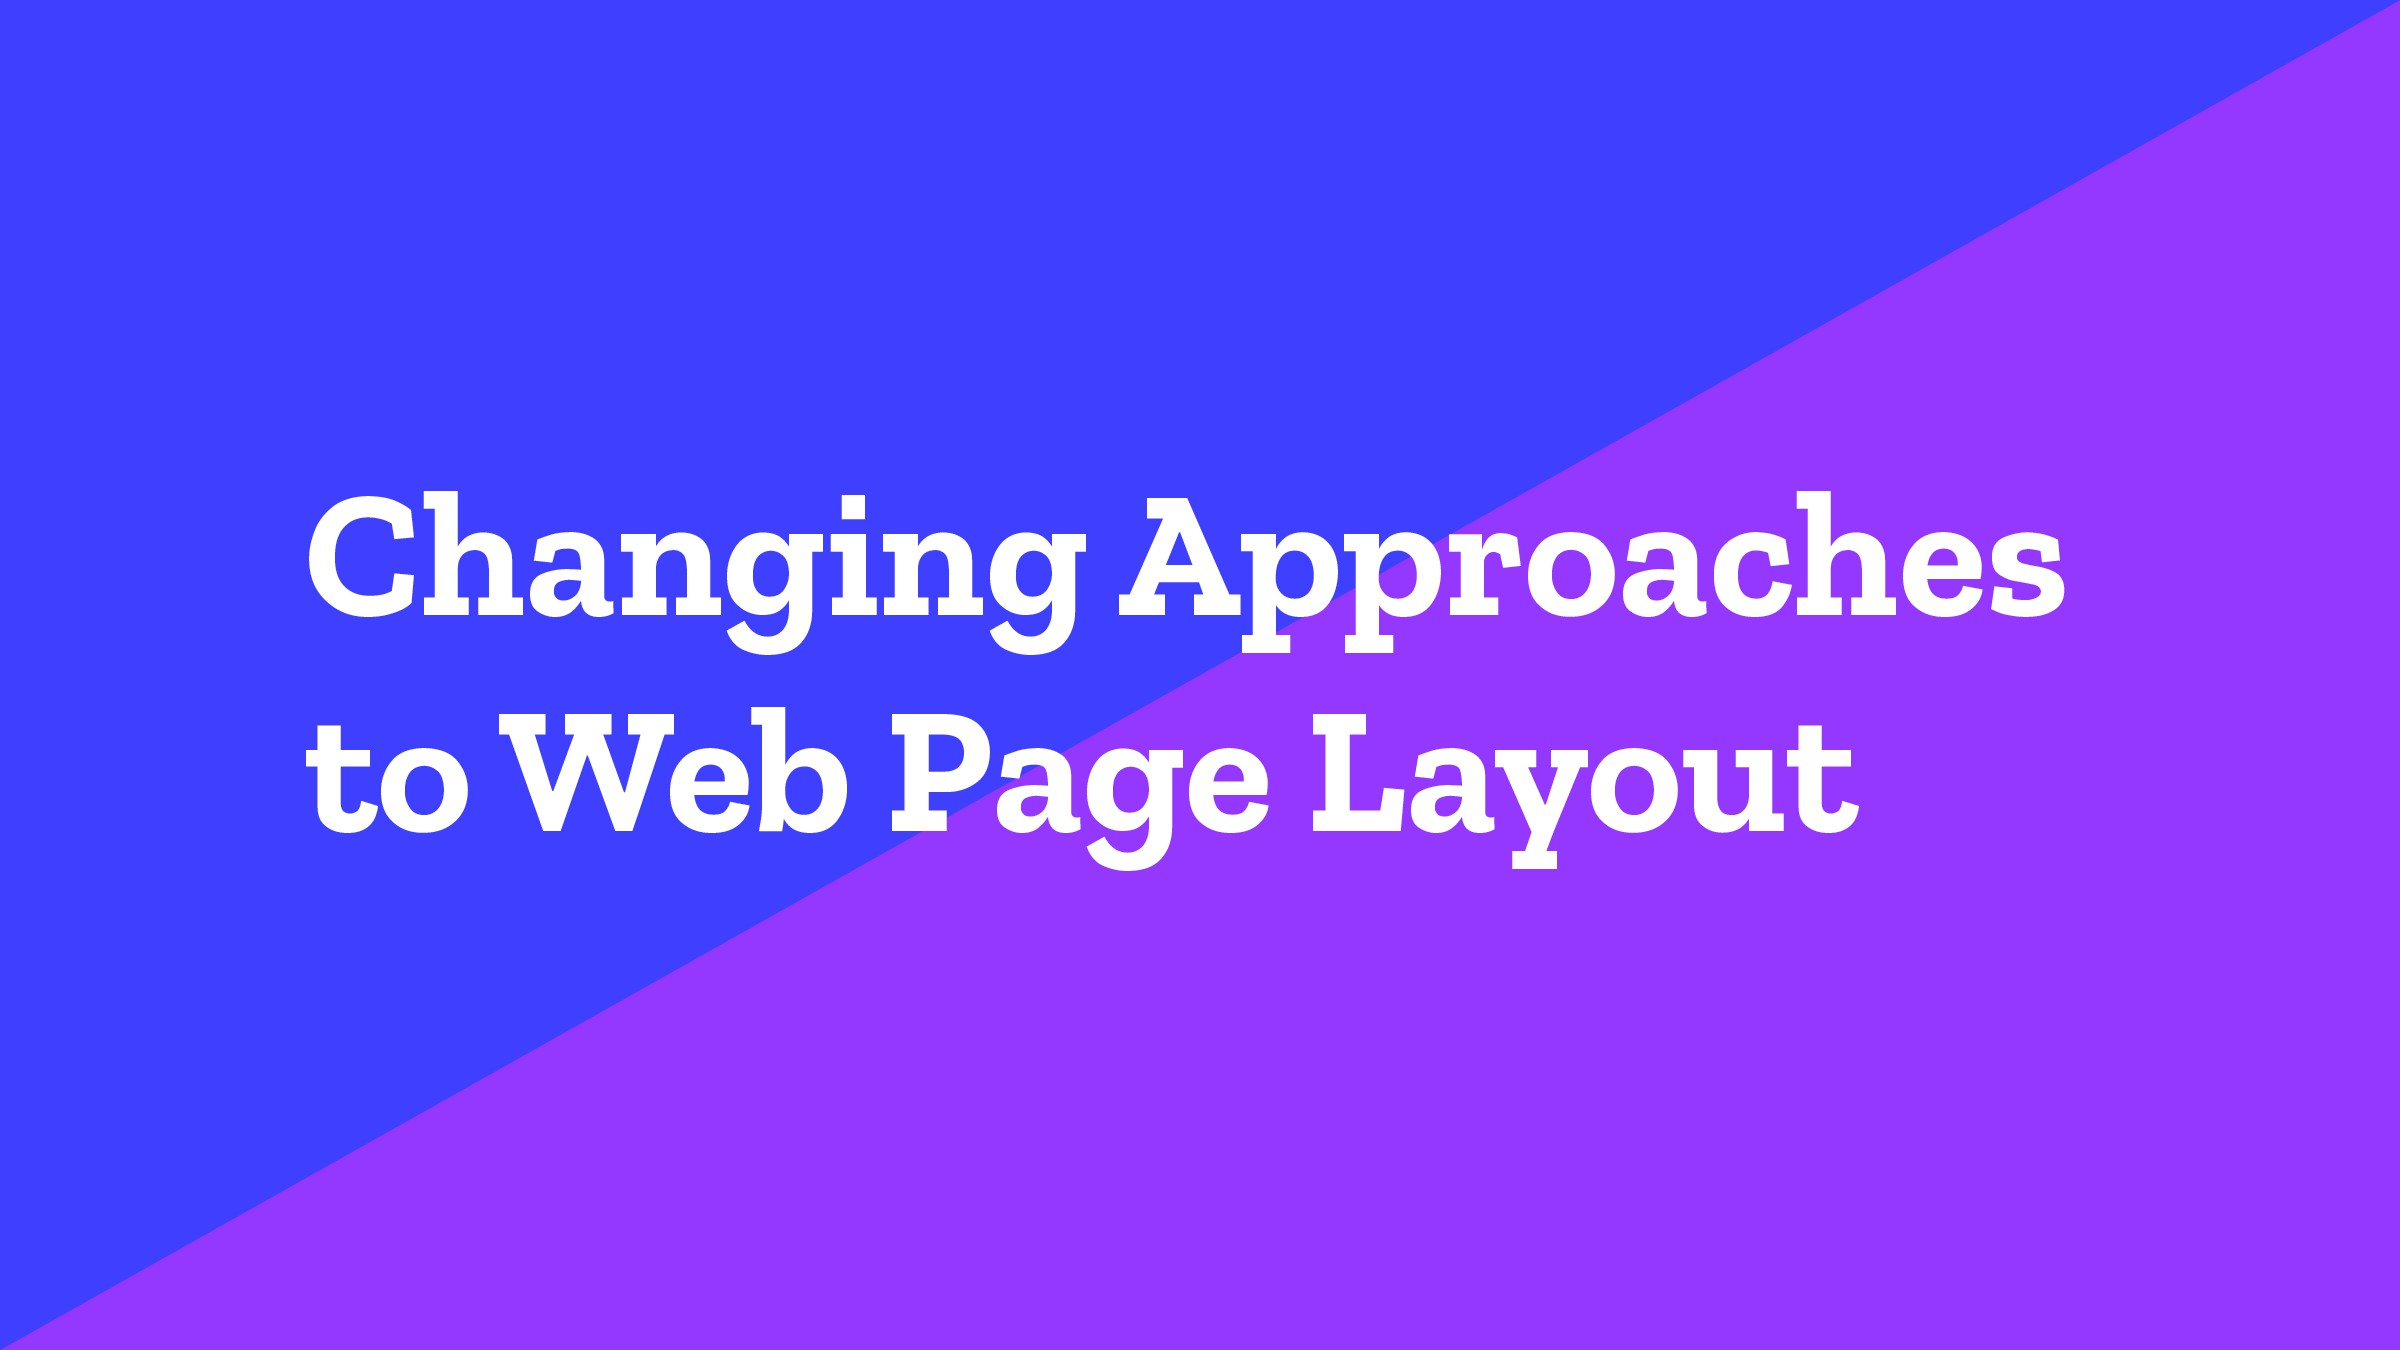 Changing Approaches to Web Page Layout